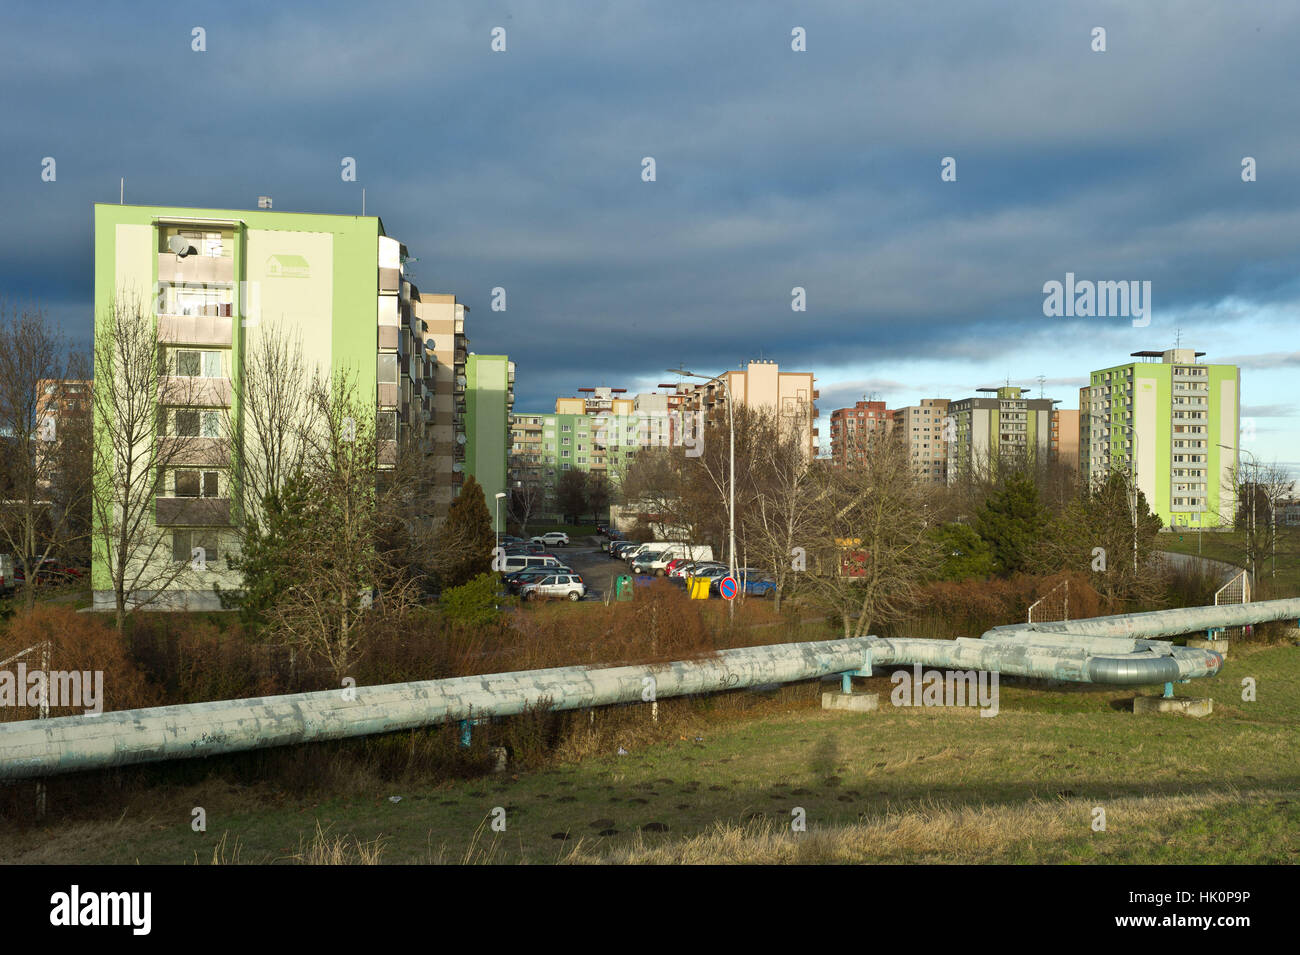 Blocks of appartments with district heating scheme pipework in forground. Nove Zamky Slovakia - Stock Image